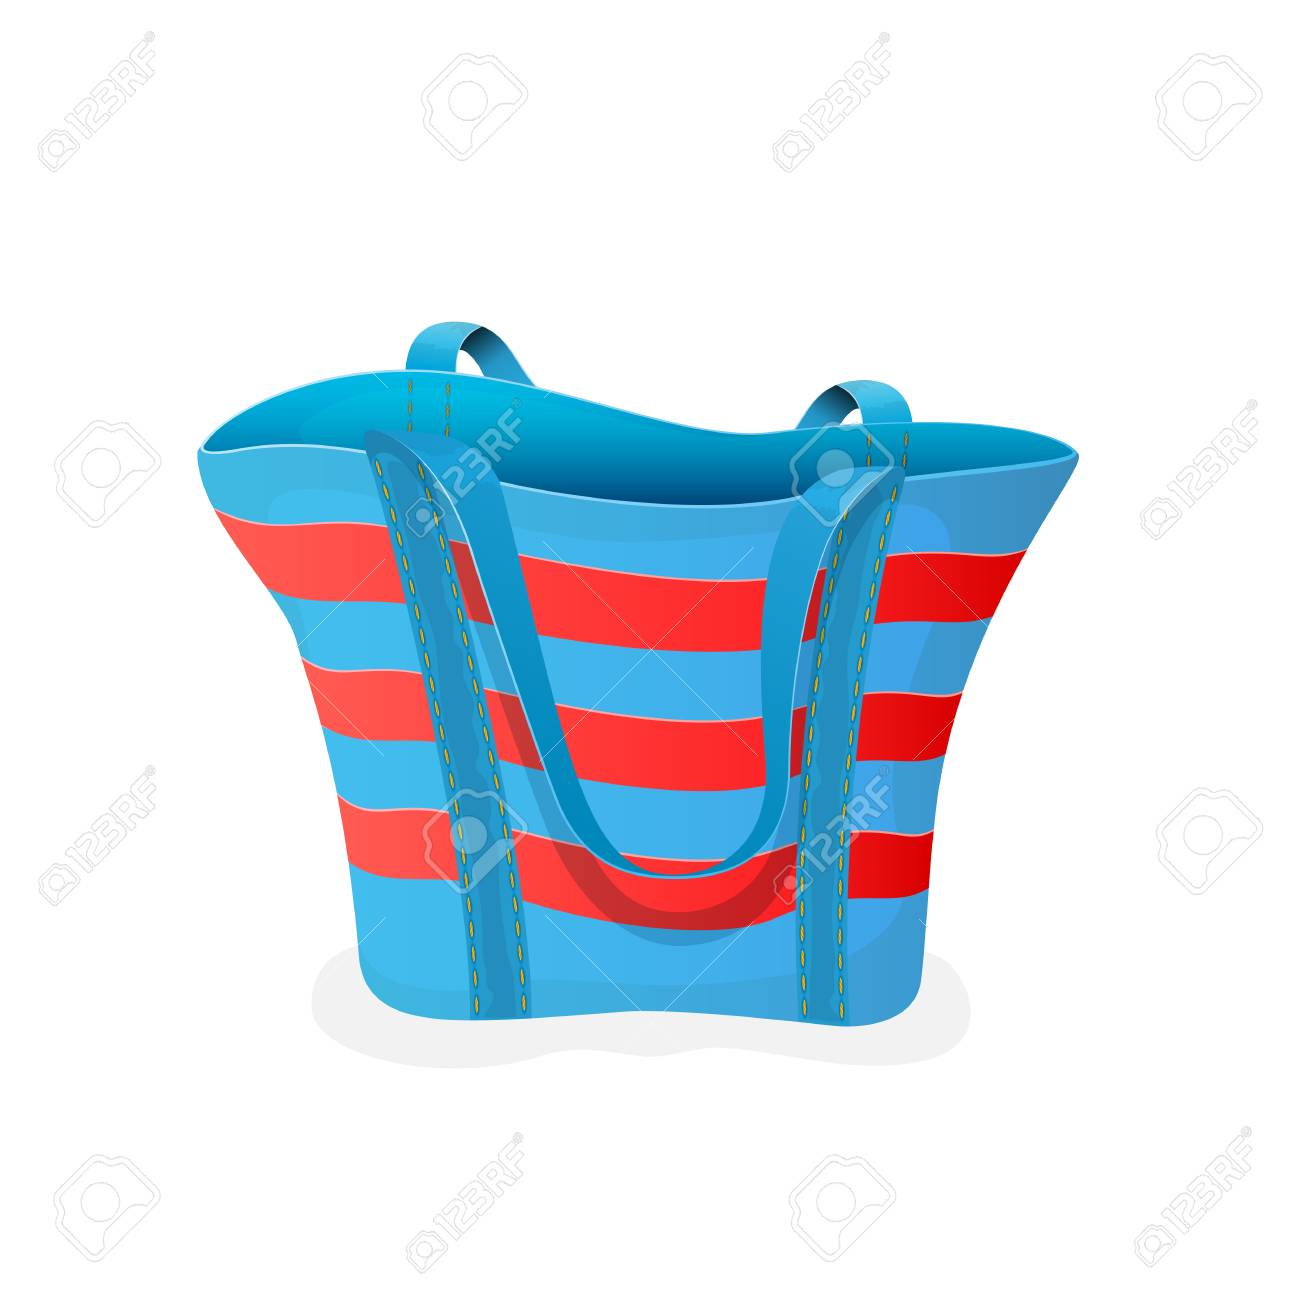 64e8f220e Striped blue-and-red bag, empty beach bag isolated on white background,